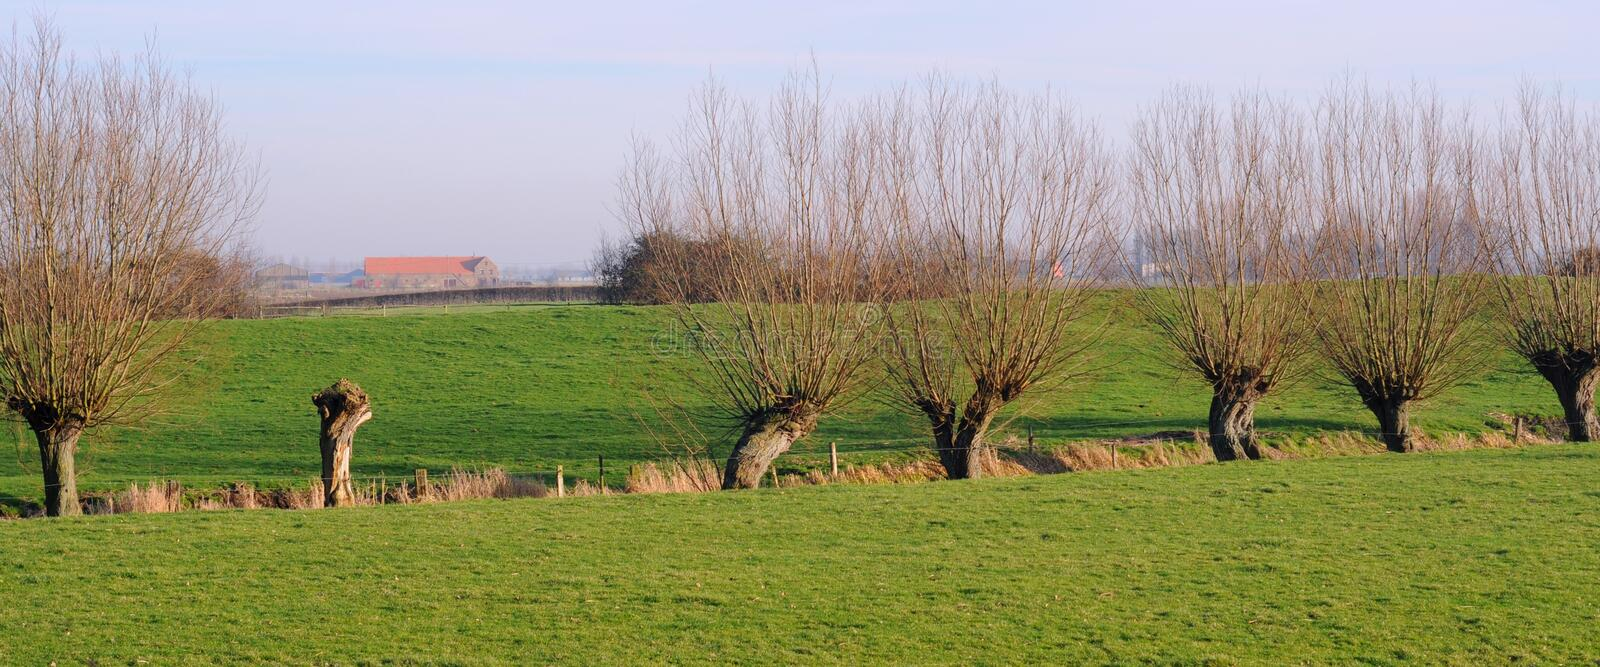 Polder royalty free stock images